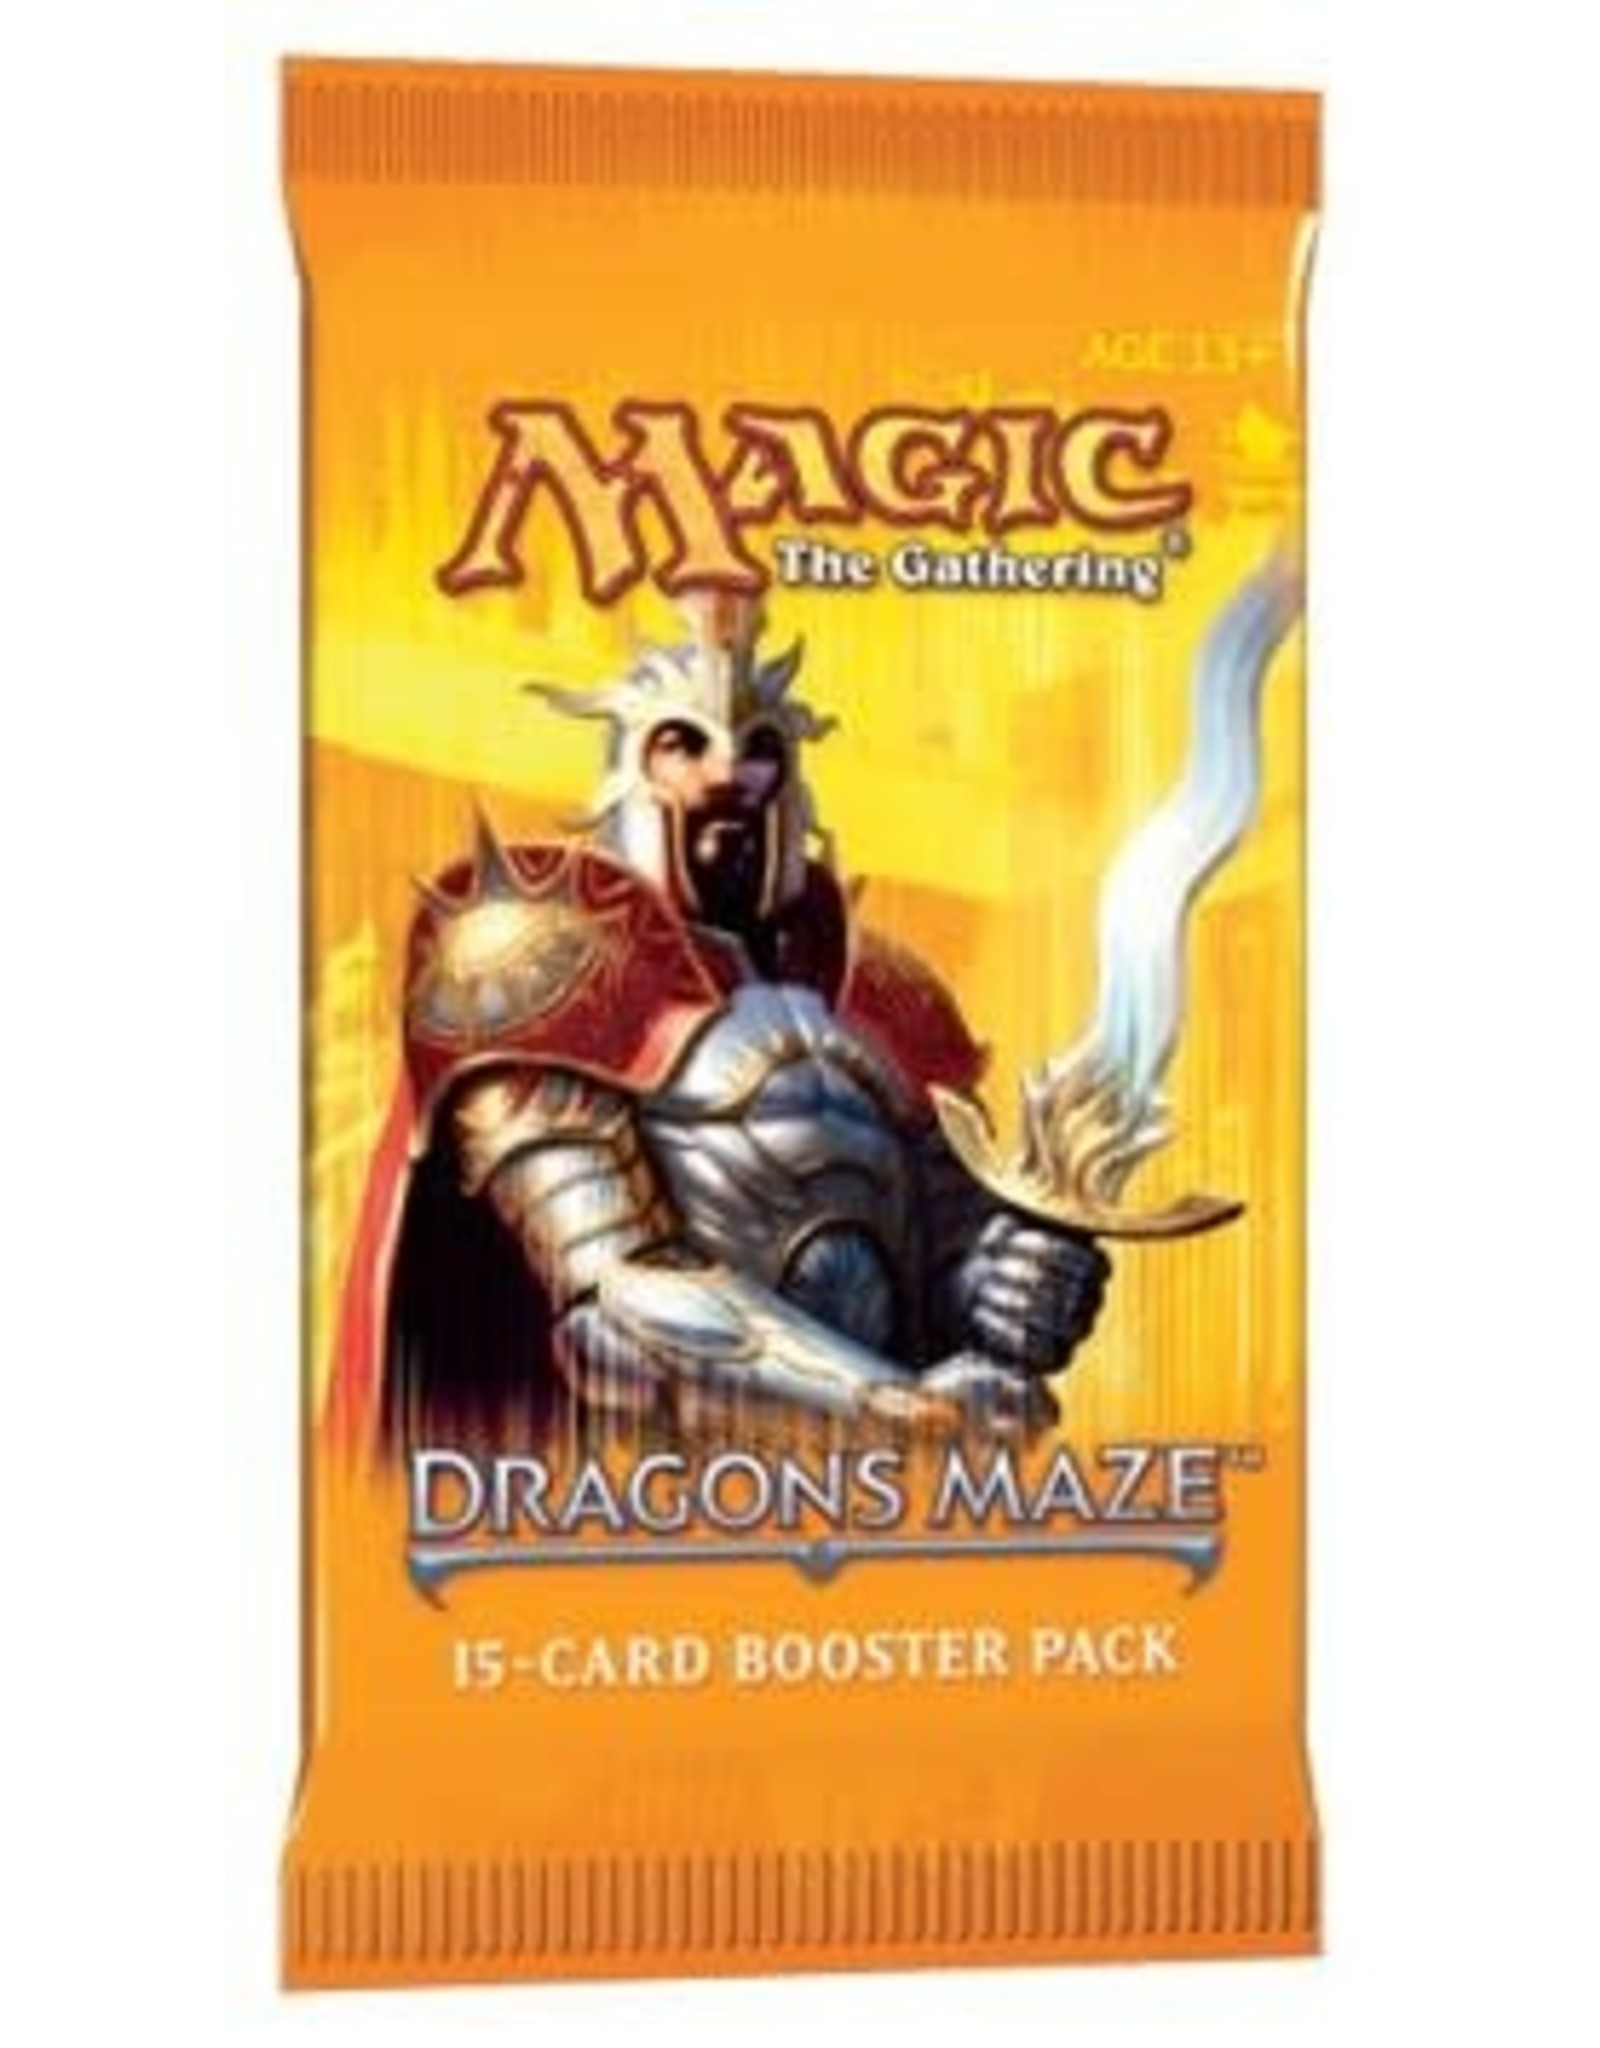 Magic: The Gathering Dragon's Maze Booster Pack